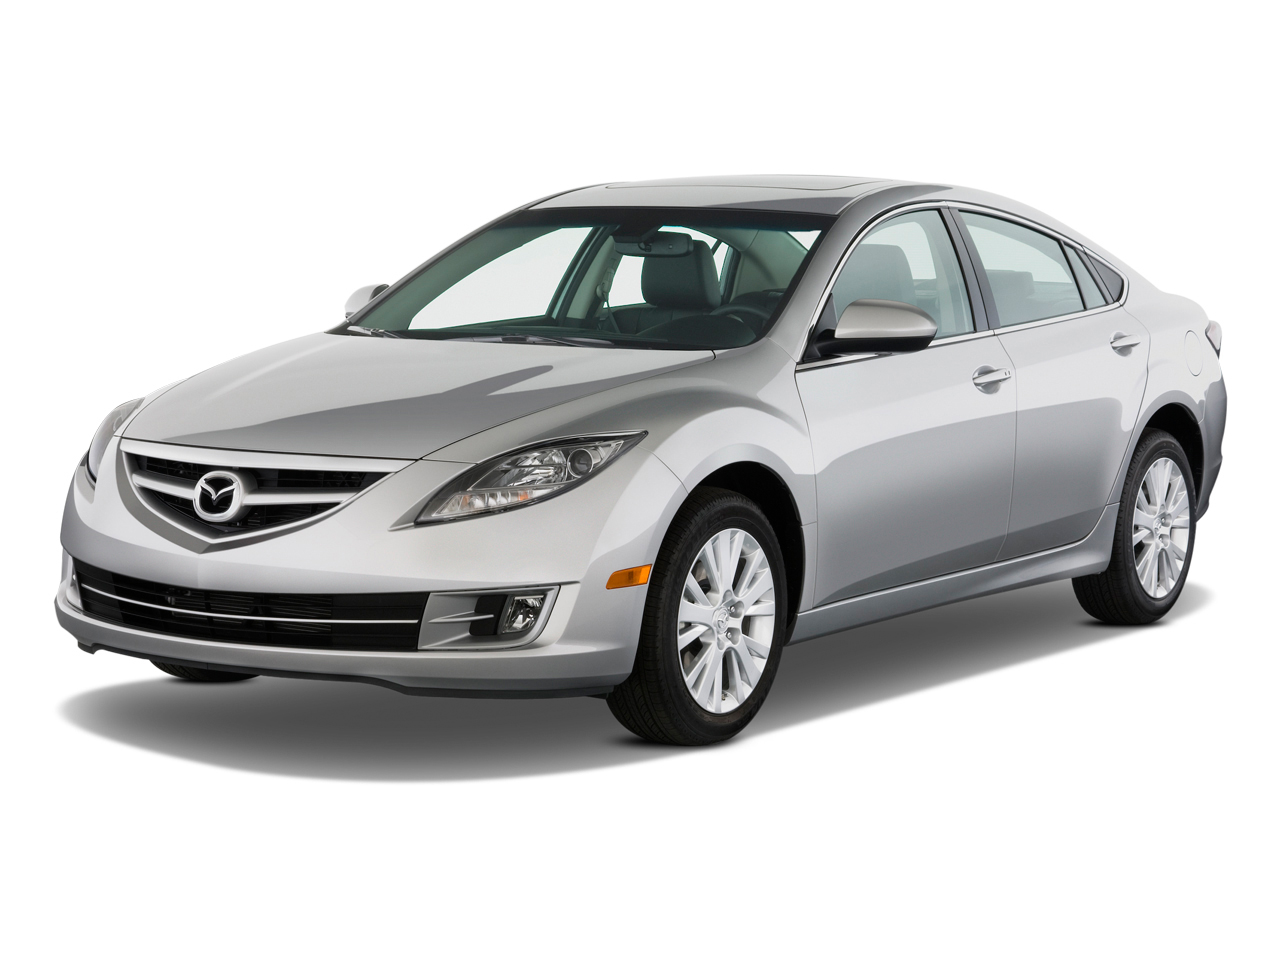 2011 Mazda Mazda6 Review Ratings Specs Prices And Photos The Car Connection